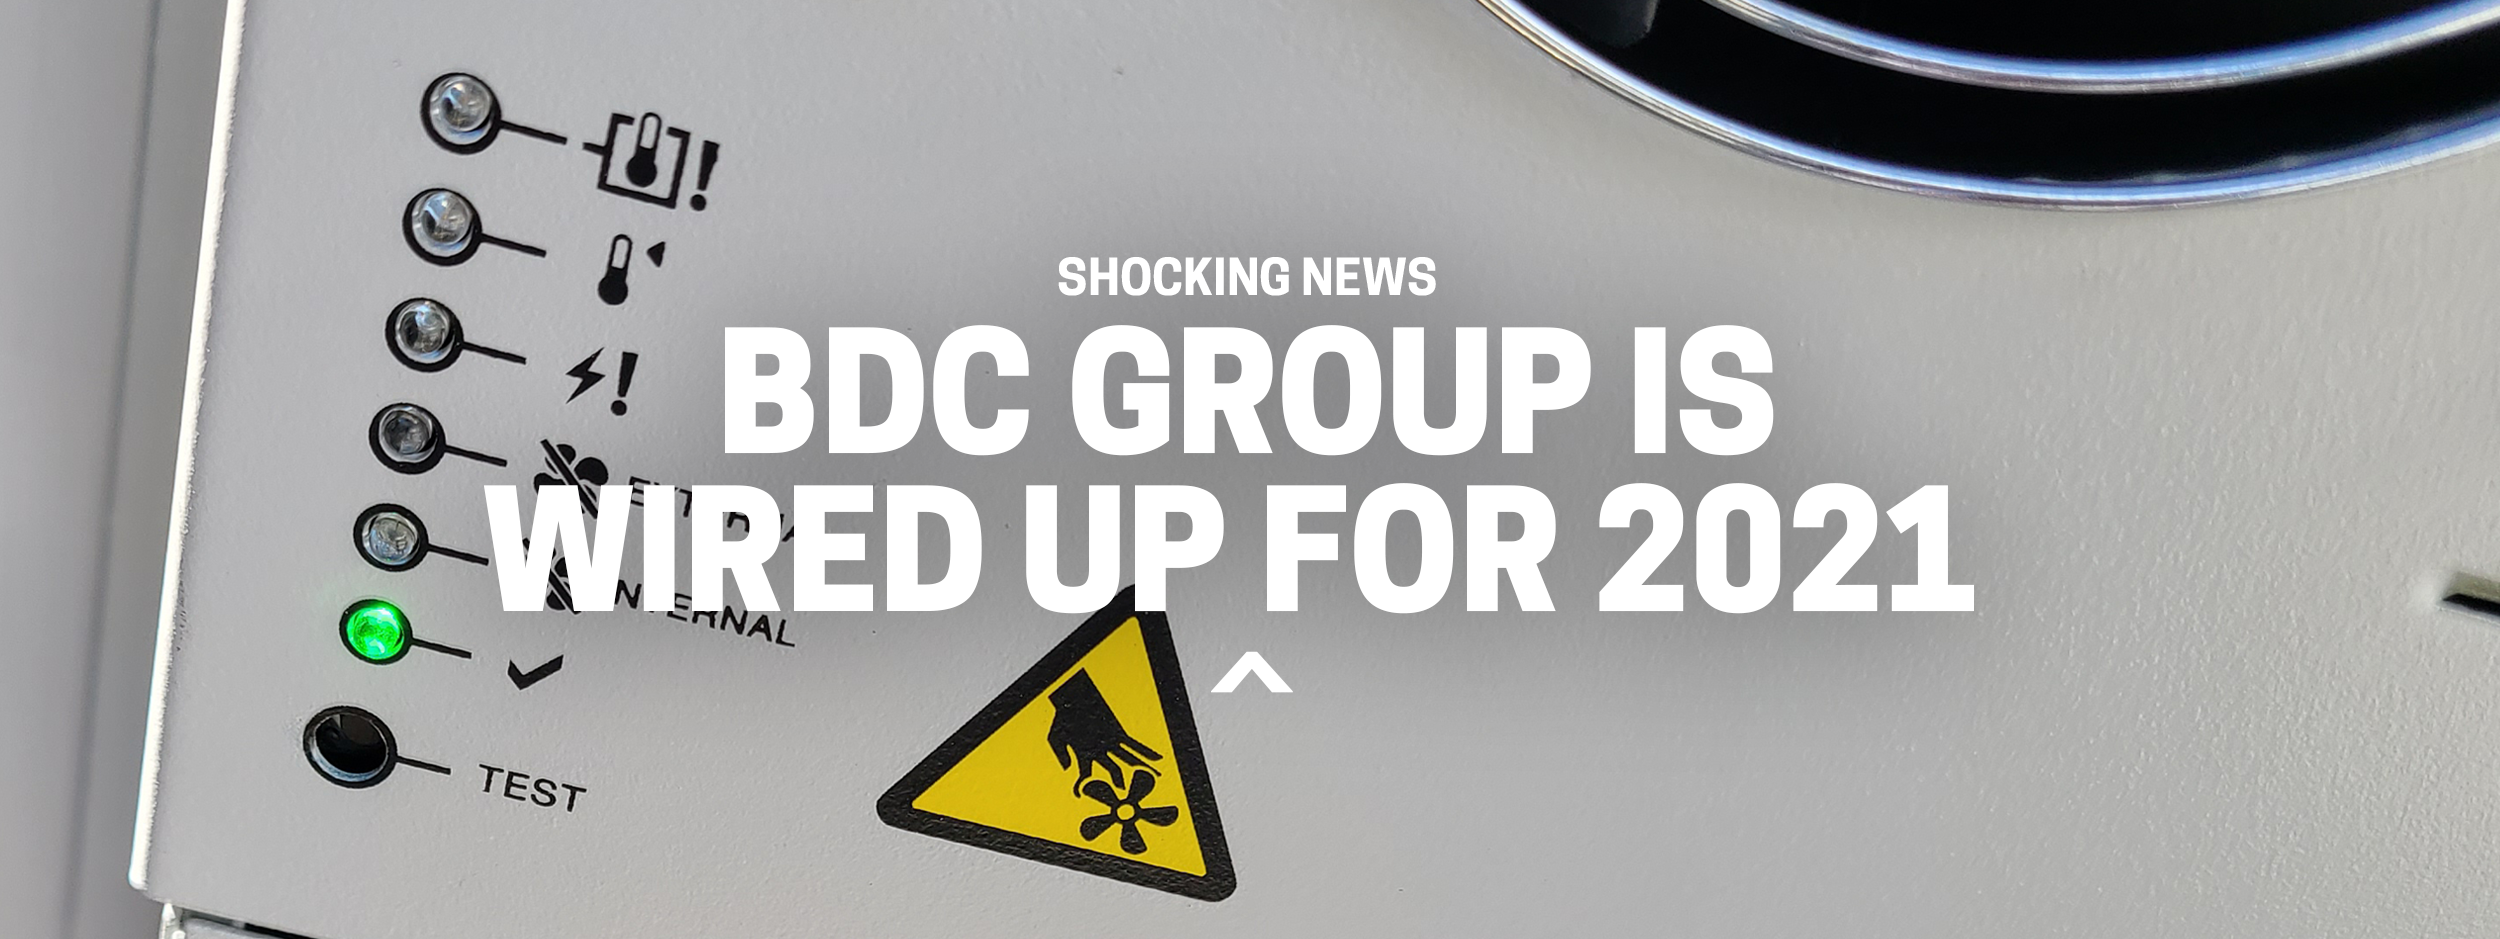 Shocking News, BDC Group is Wired Up for 2021